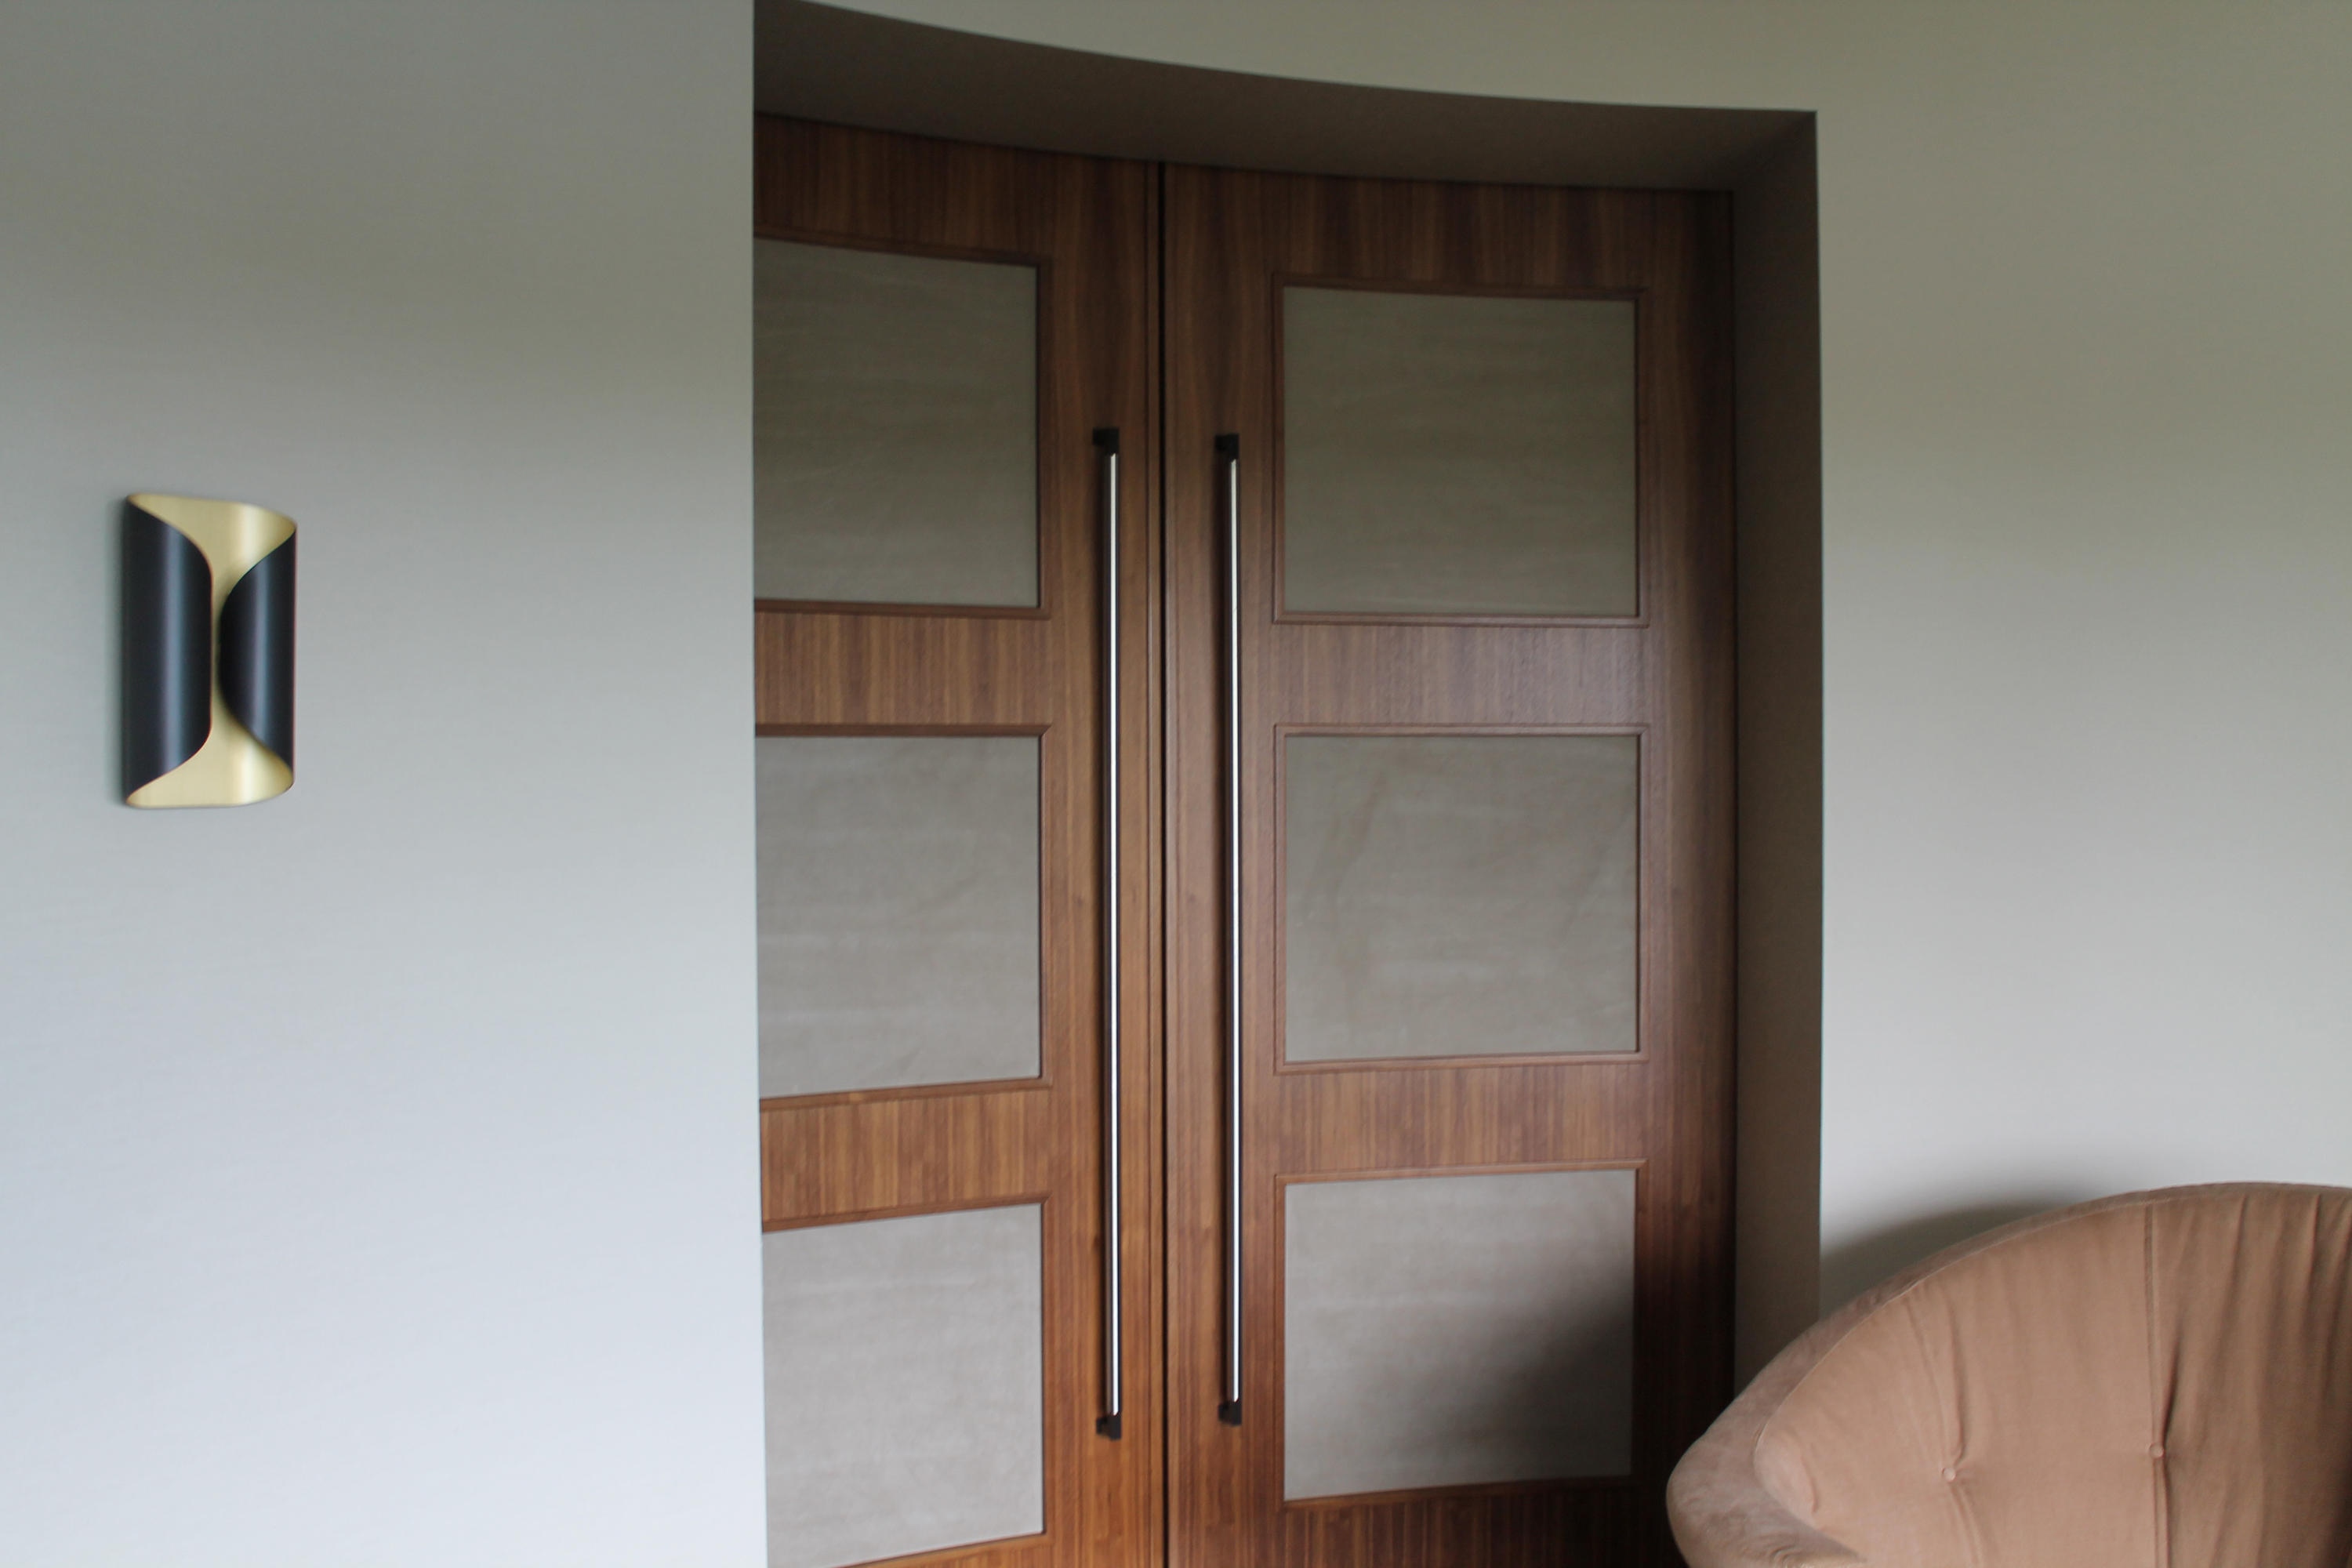 Specialty Doors - Curved Wood Doors by Bartels Doors \u0026 Hardware | Internal doors & SPECIALTY DOORS - CURVED WOOD DOORS - Internal doors from Bartels ... Pezcame.Com